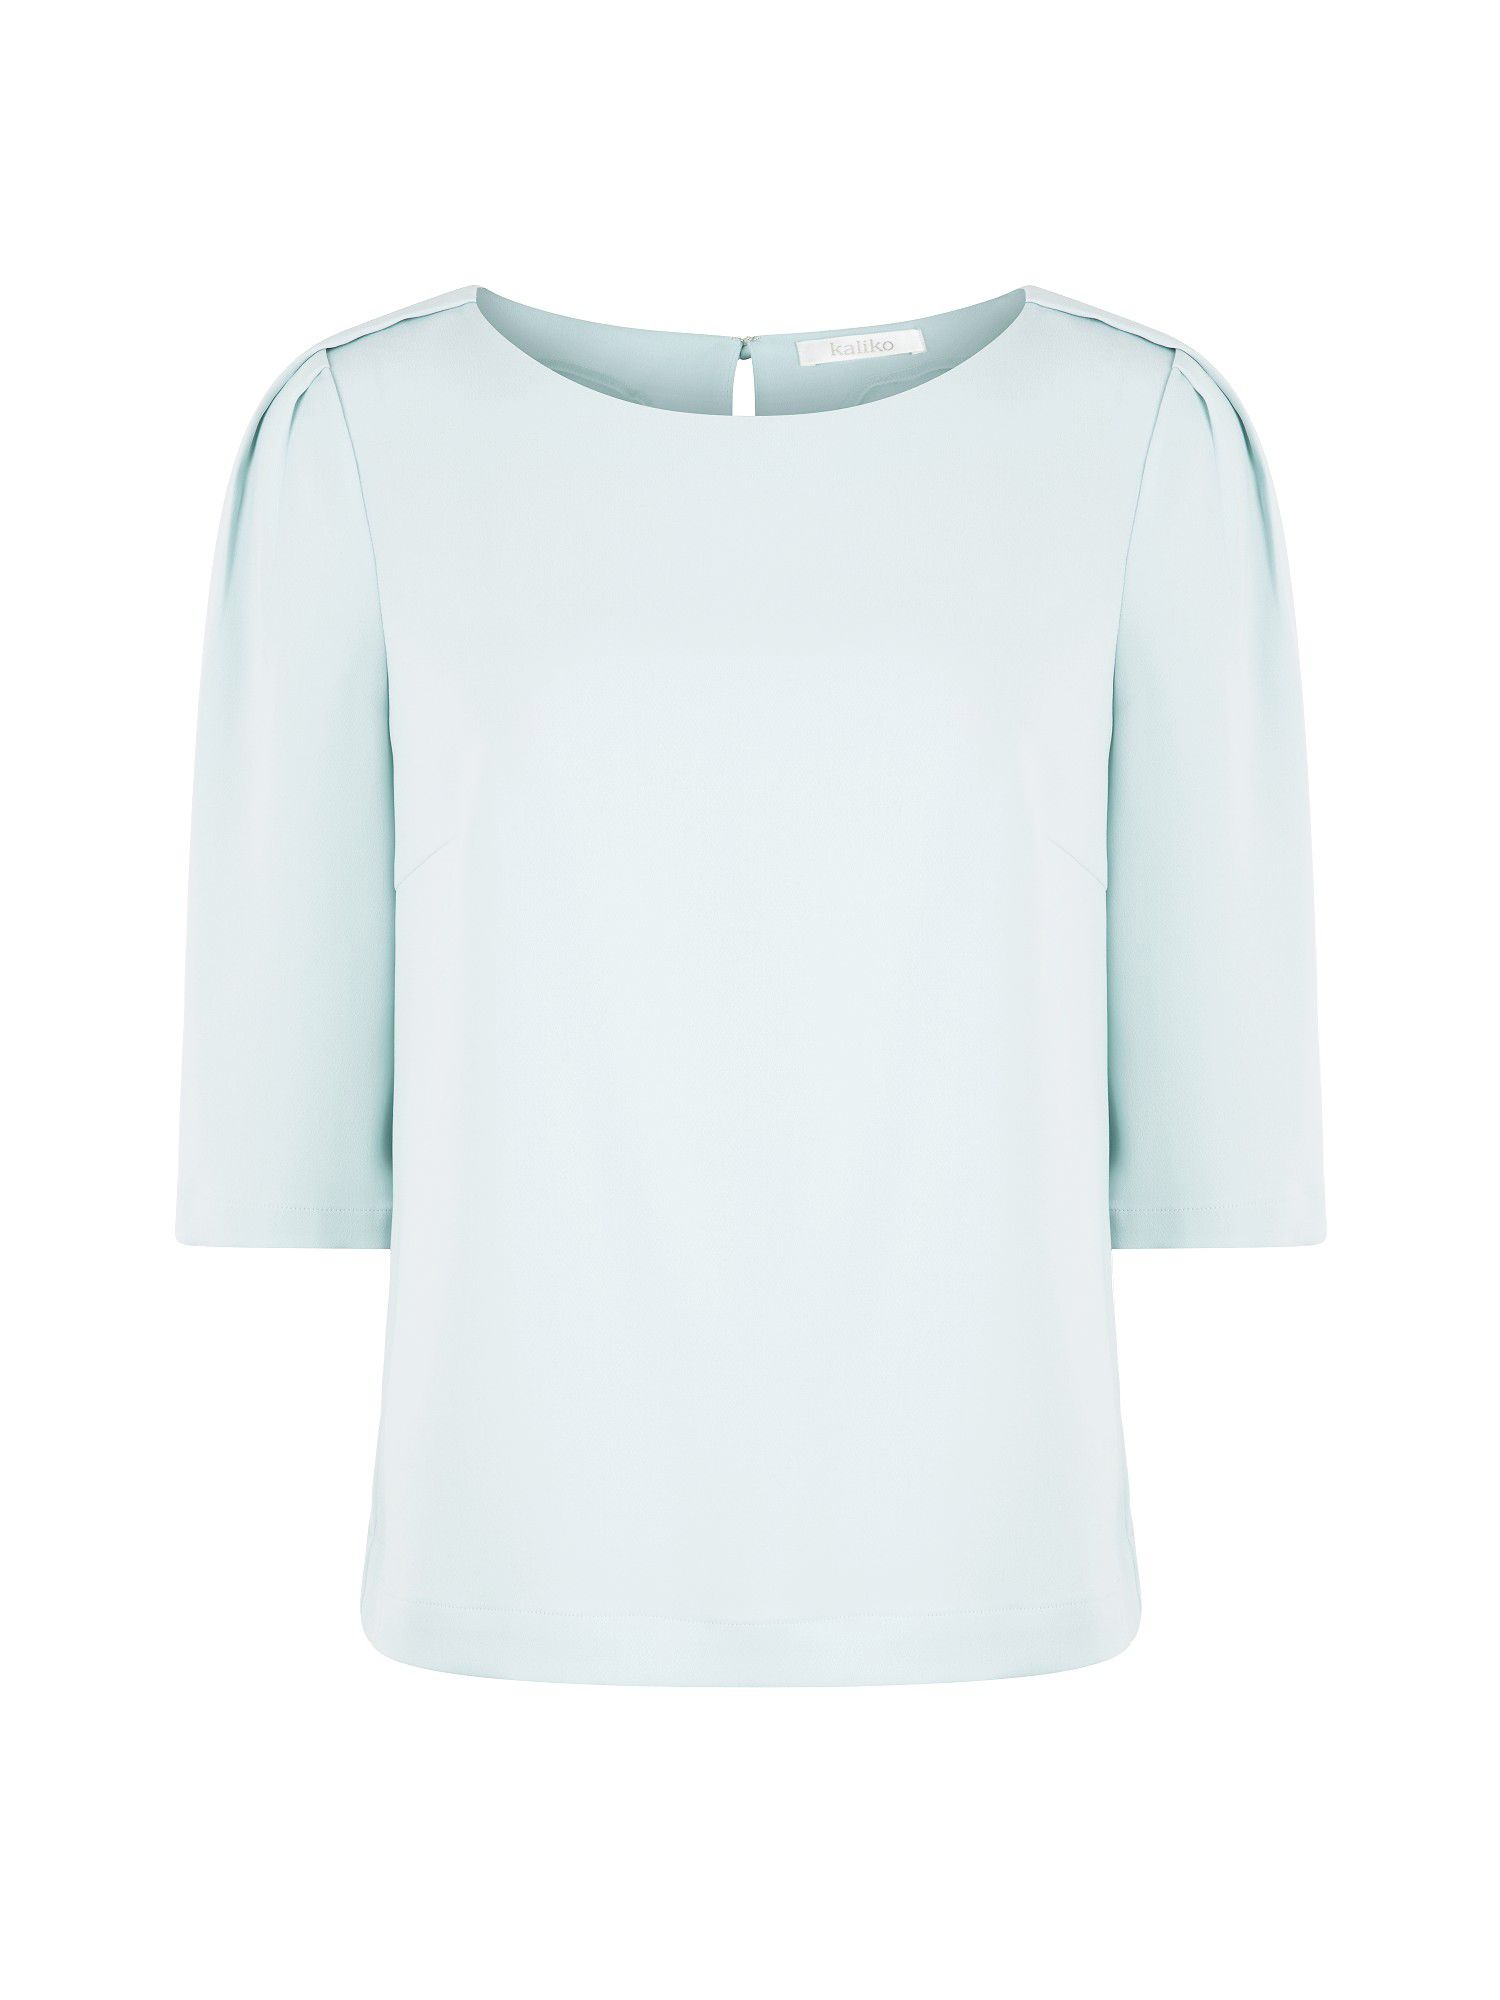 Duck egg blue shoulder tuck top